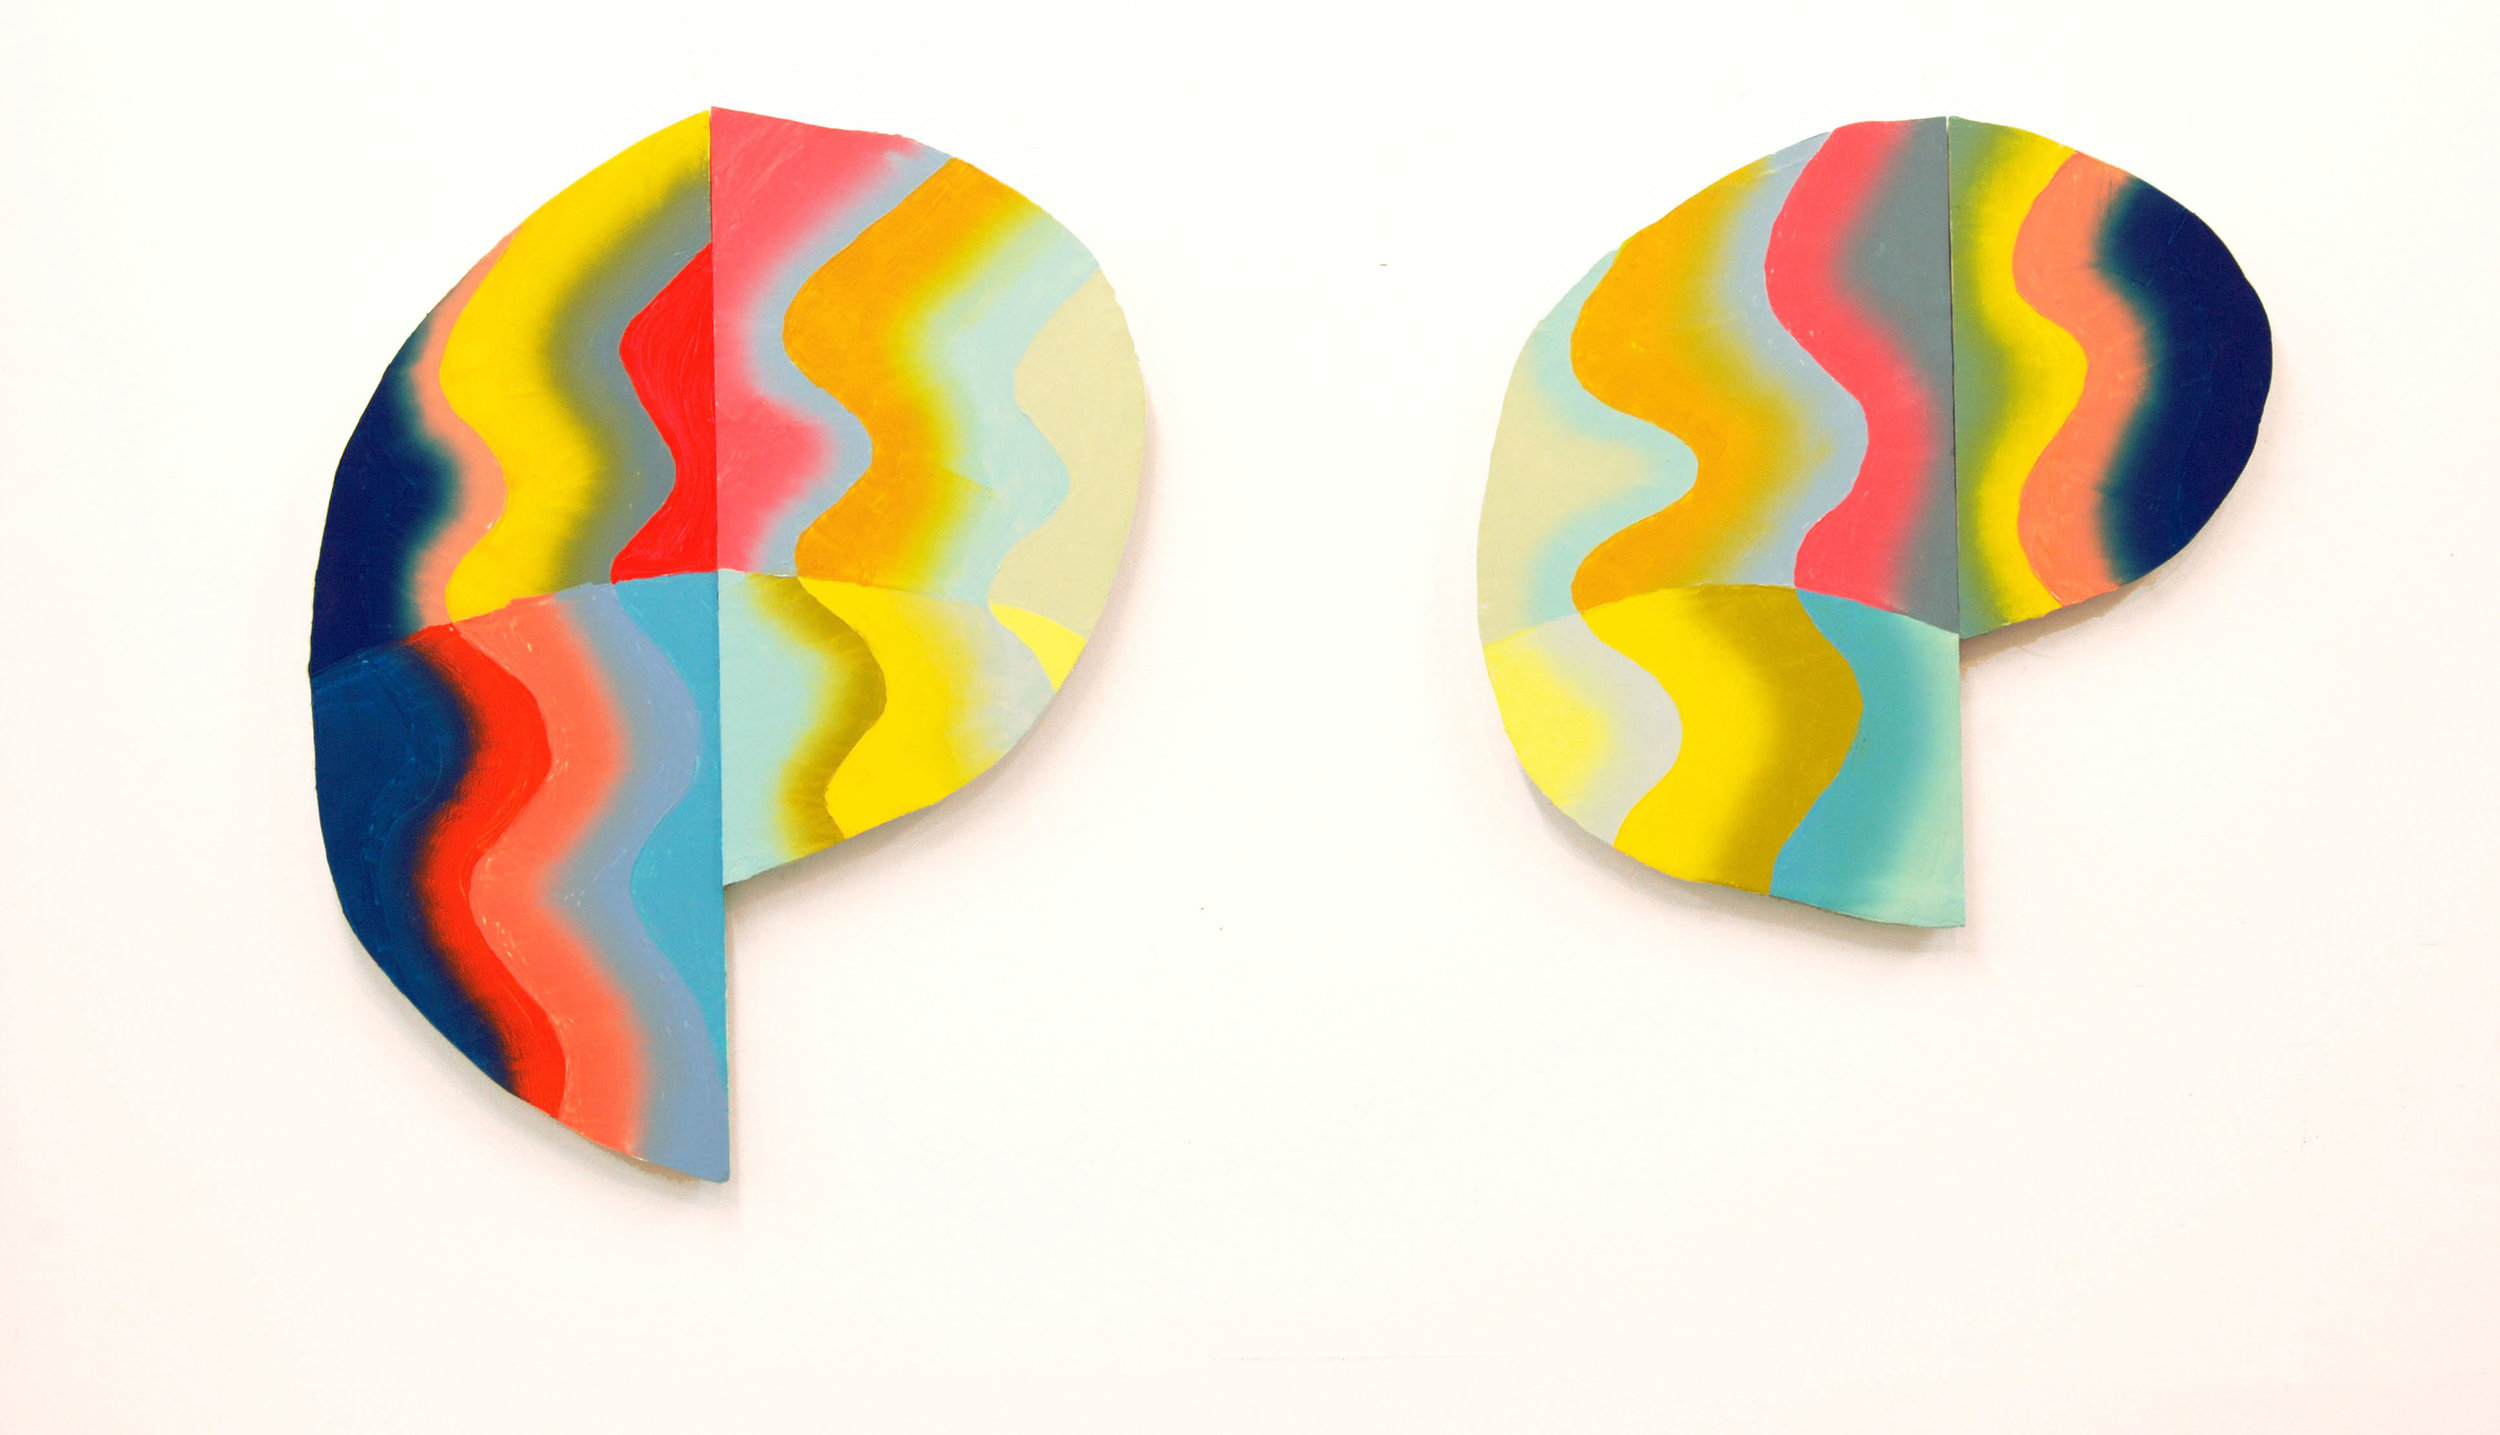 "visual fry, diptych, oil on shaped panels, 26"" x 20"" (L), 20"" x 20"" (R), 2014."